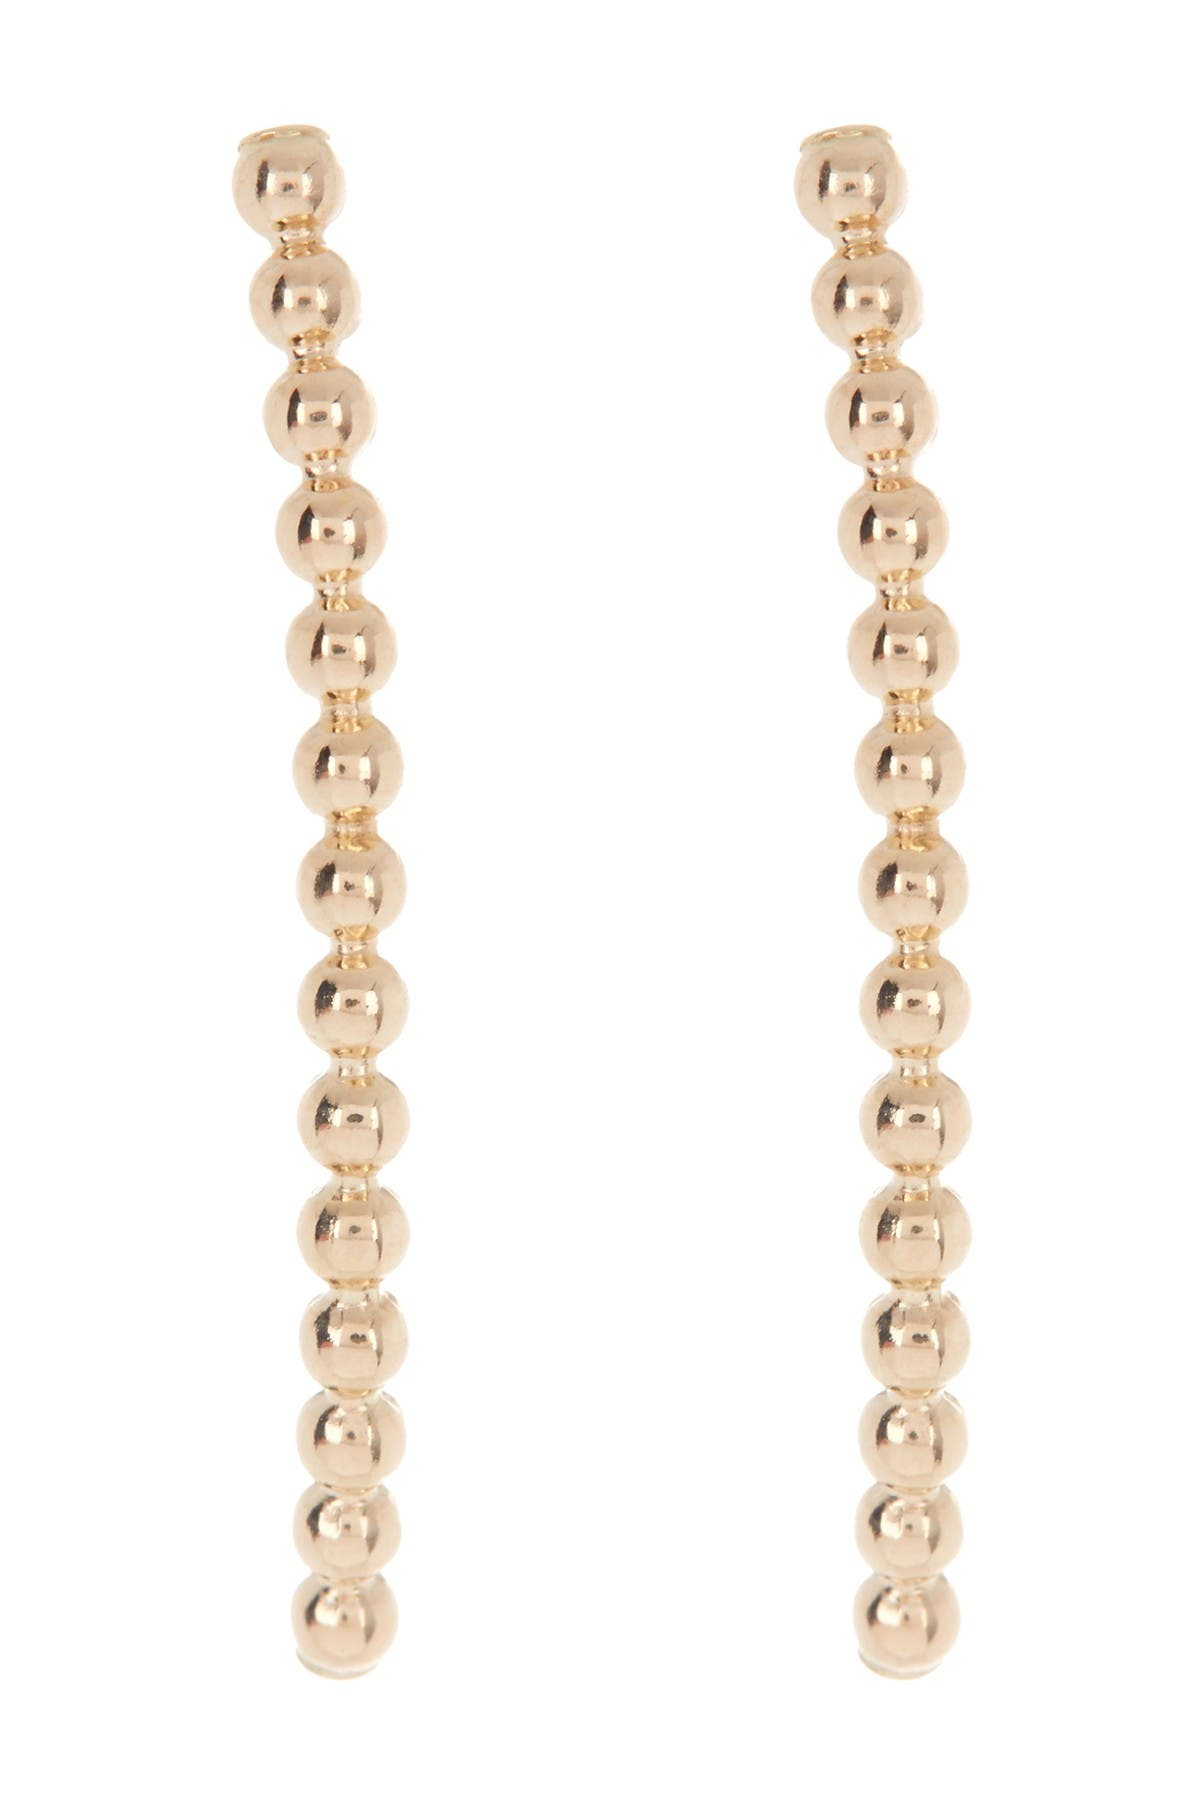 Image of Candela 14K Yellow Gold Curved Beaded Crawler Earrings